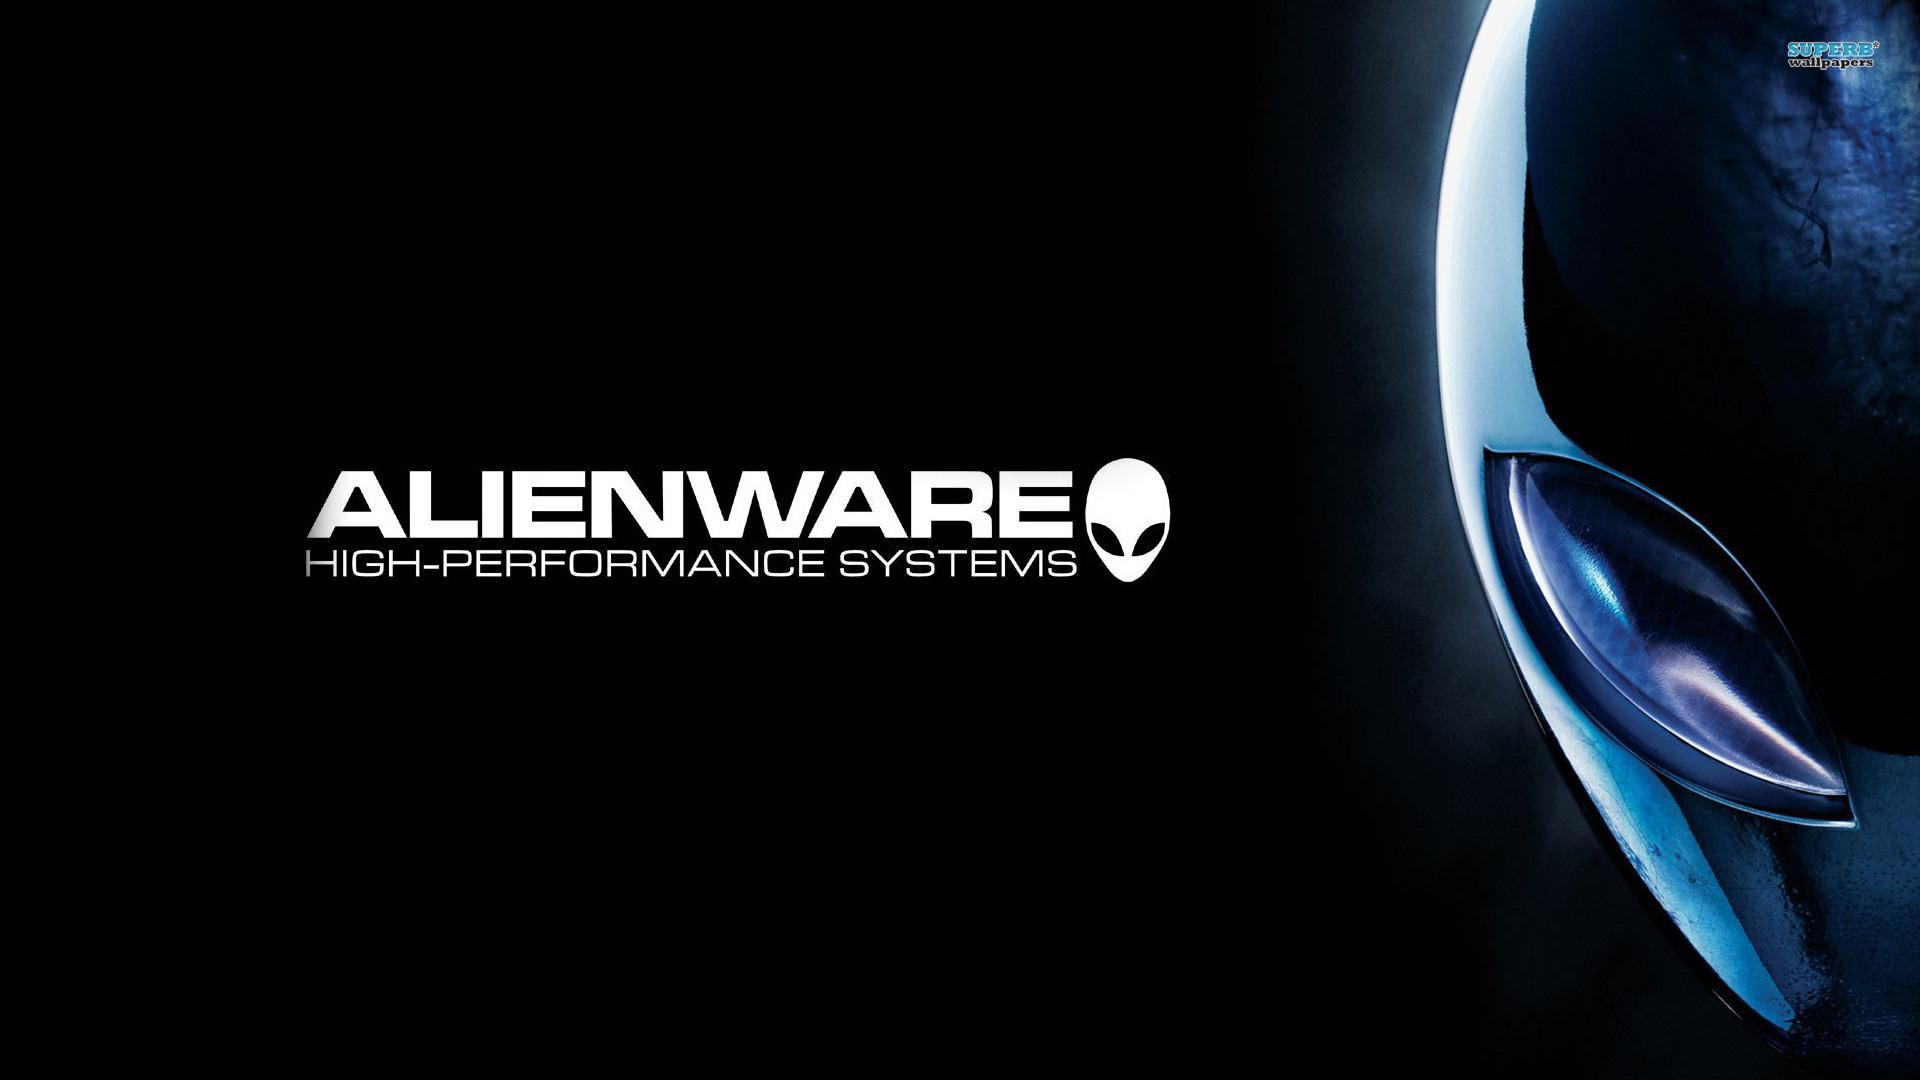 Alienwares Wallpapers 1920x1080